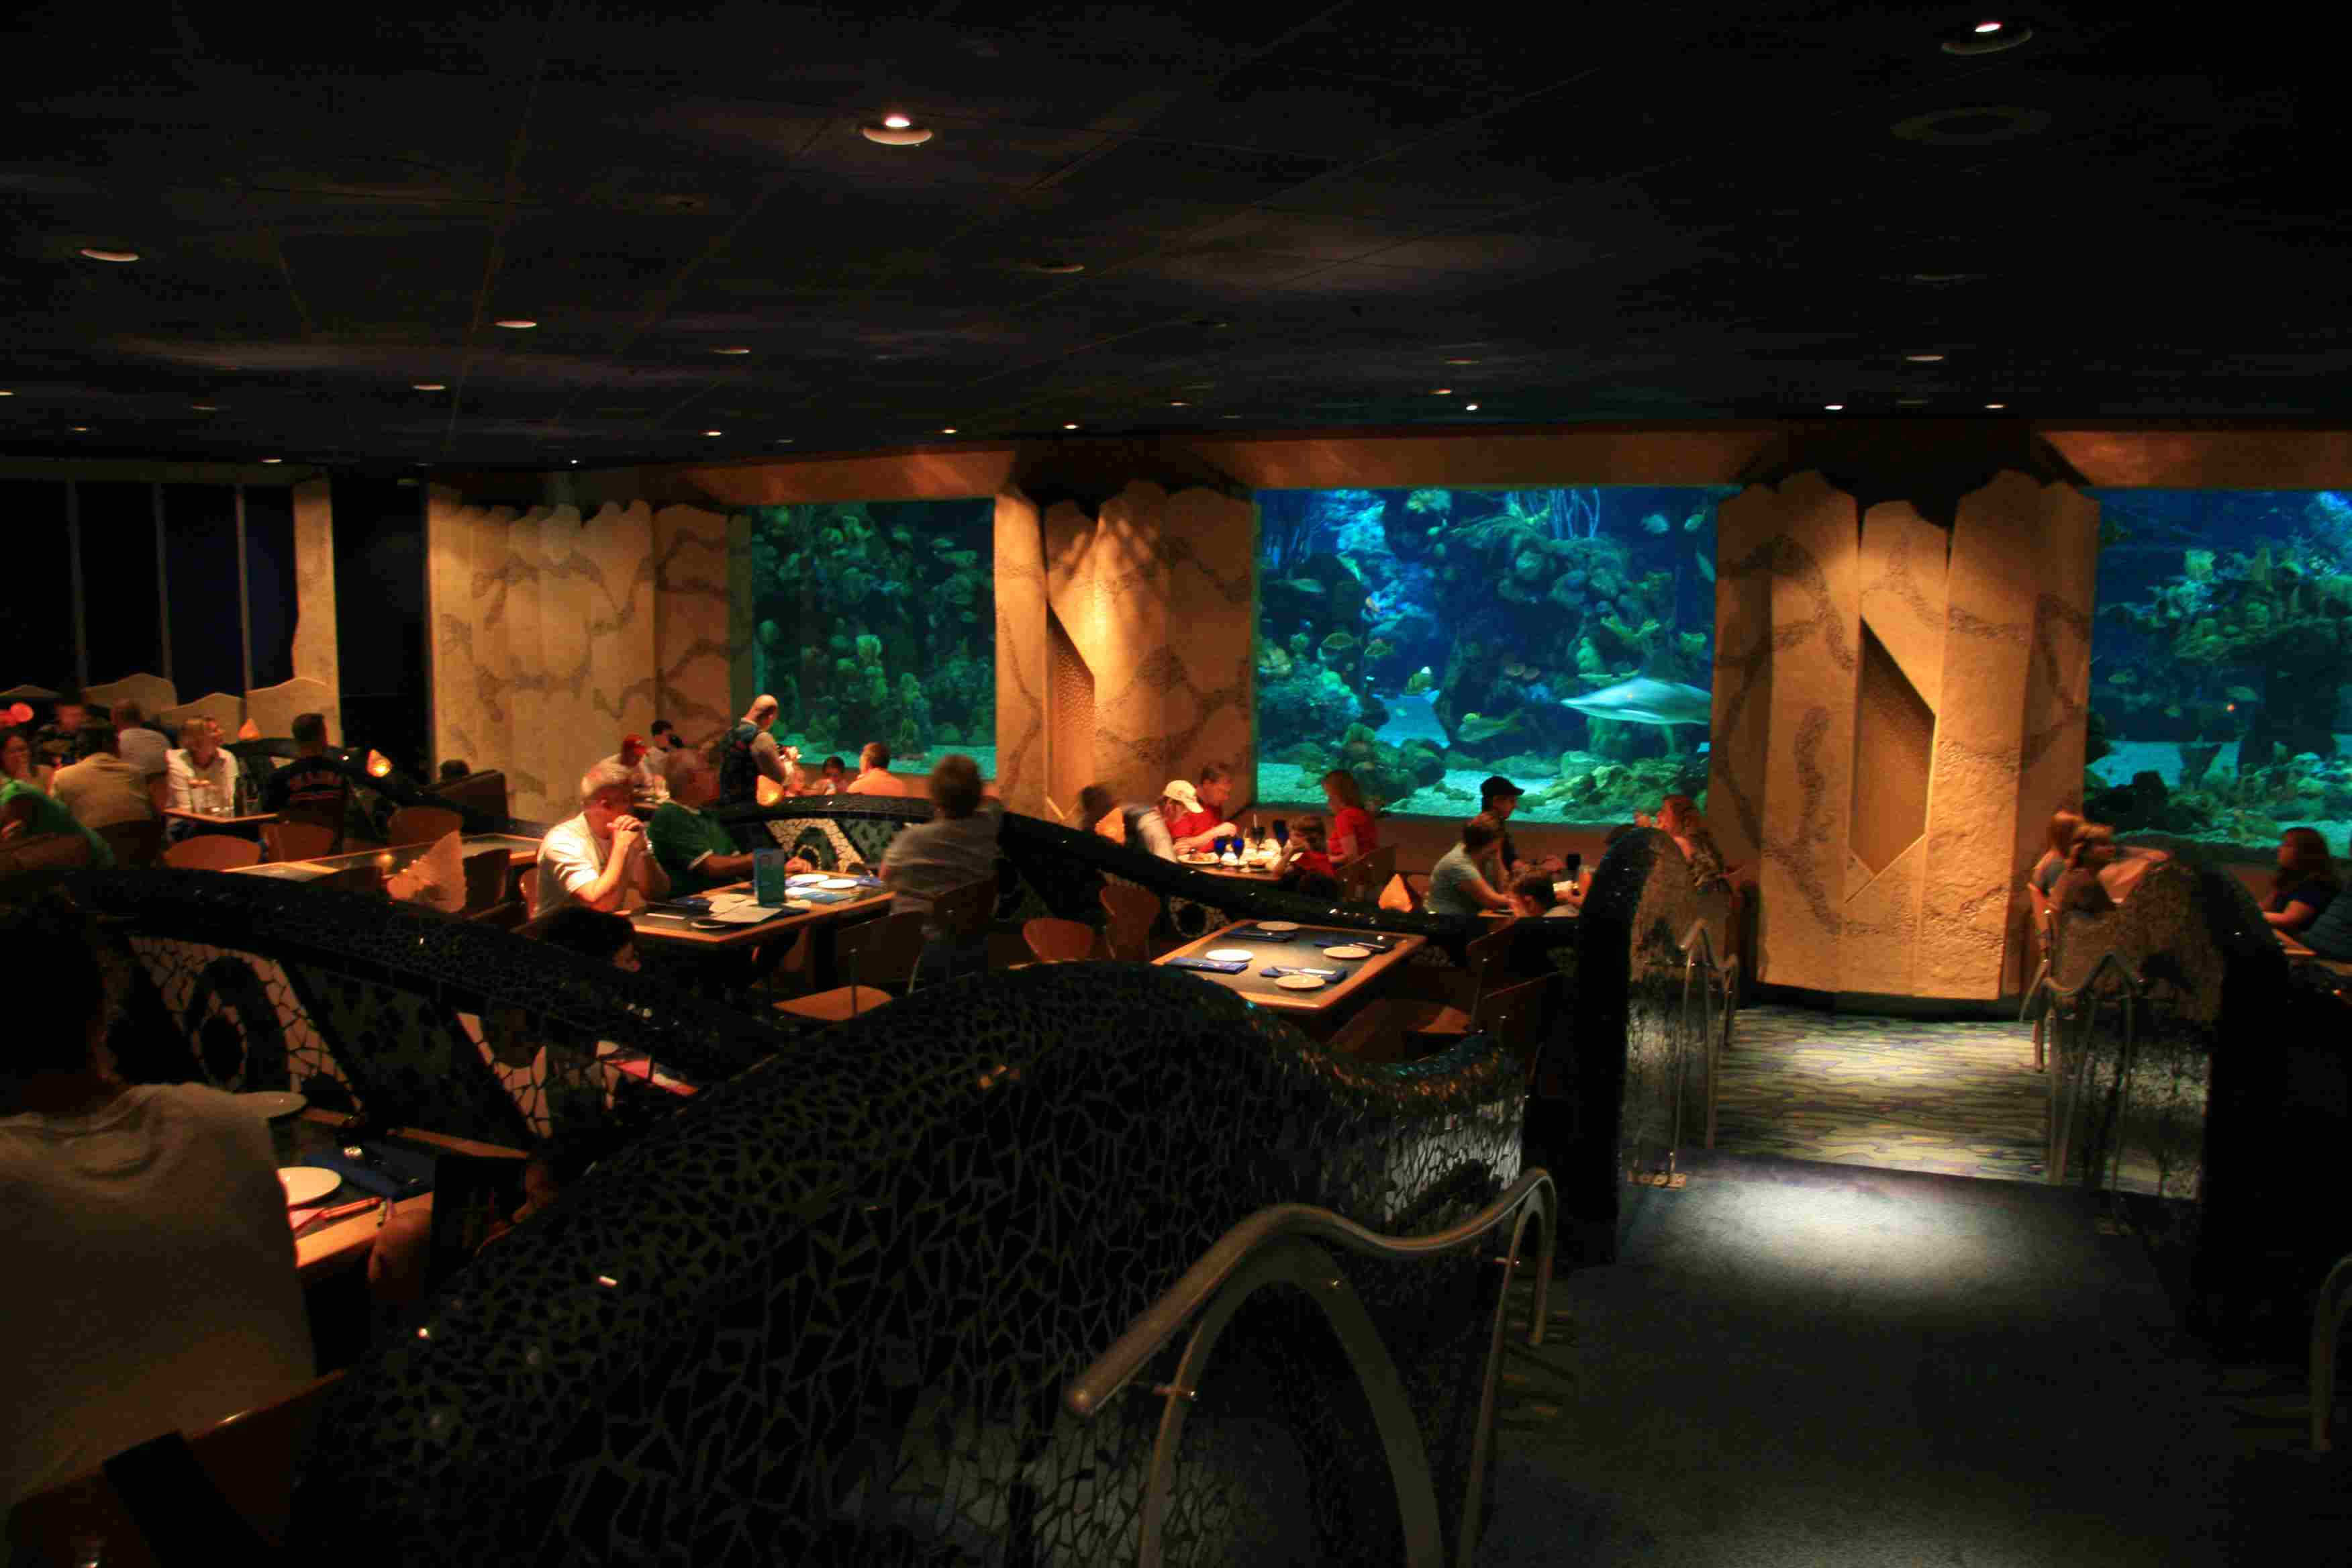 Diners at Coral Reef Restaurant eat with views of the massive saltwater tank at Epcot